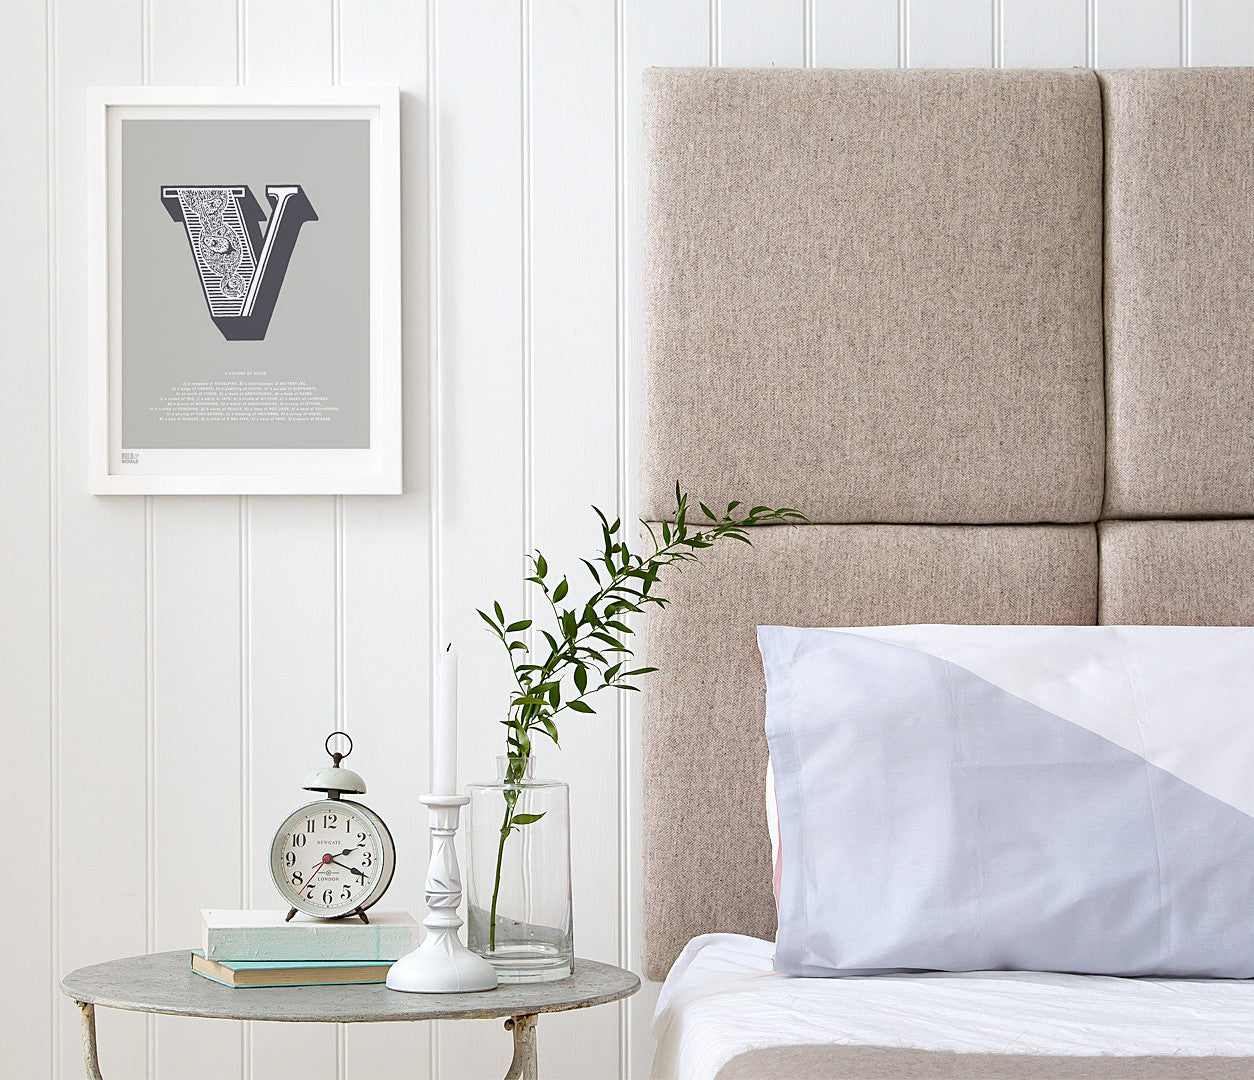 Pictures and Wall Art, Screen Printed Illustrated Letter V design in putty grey